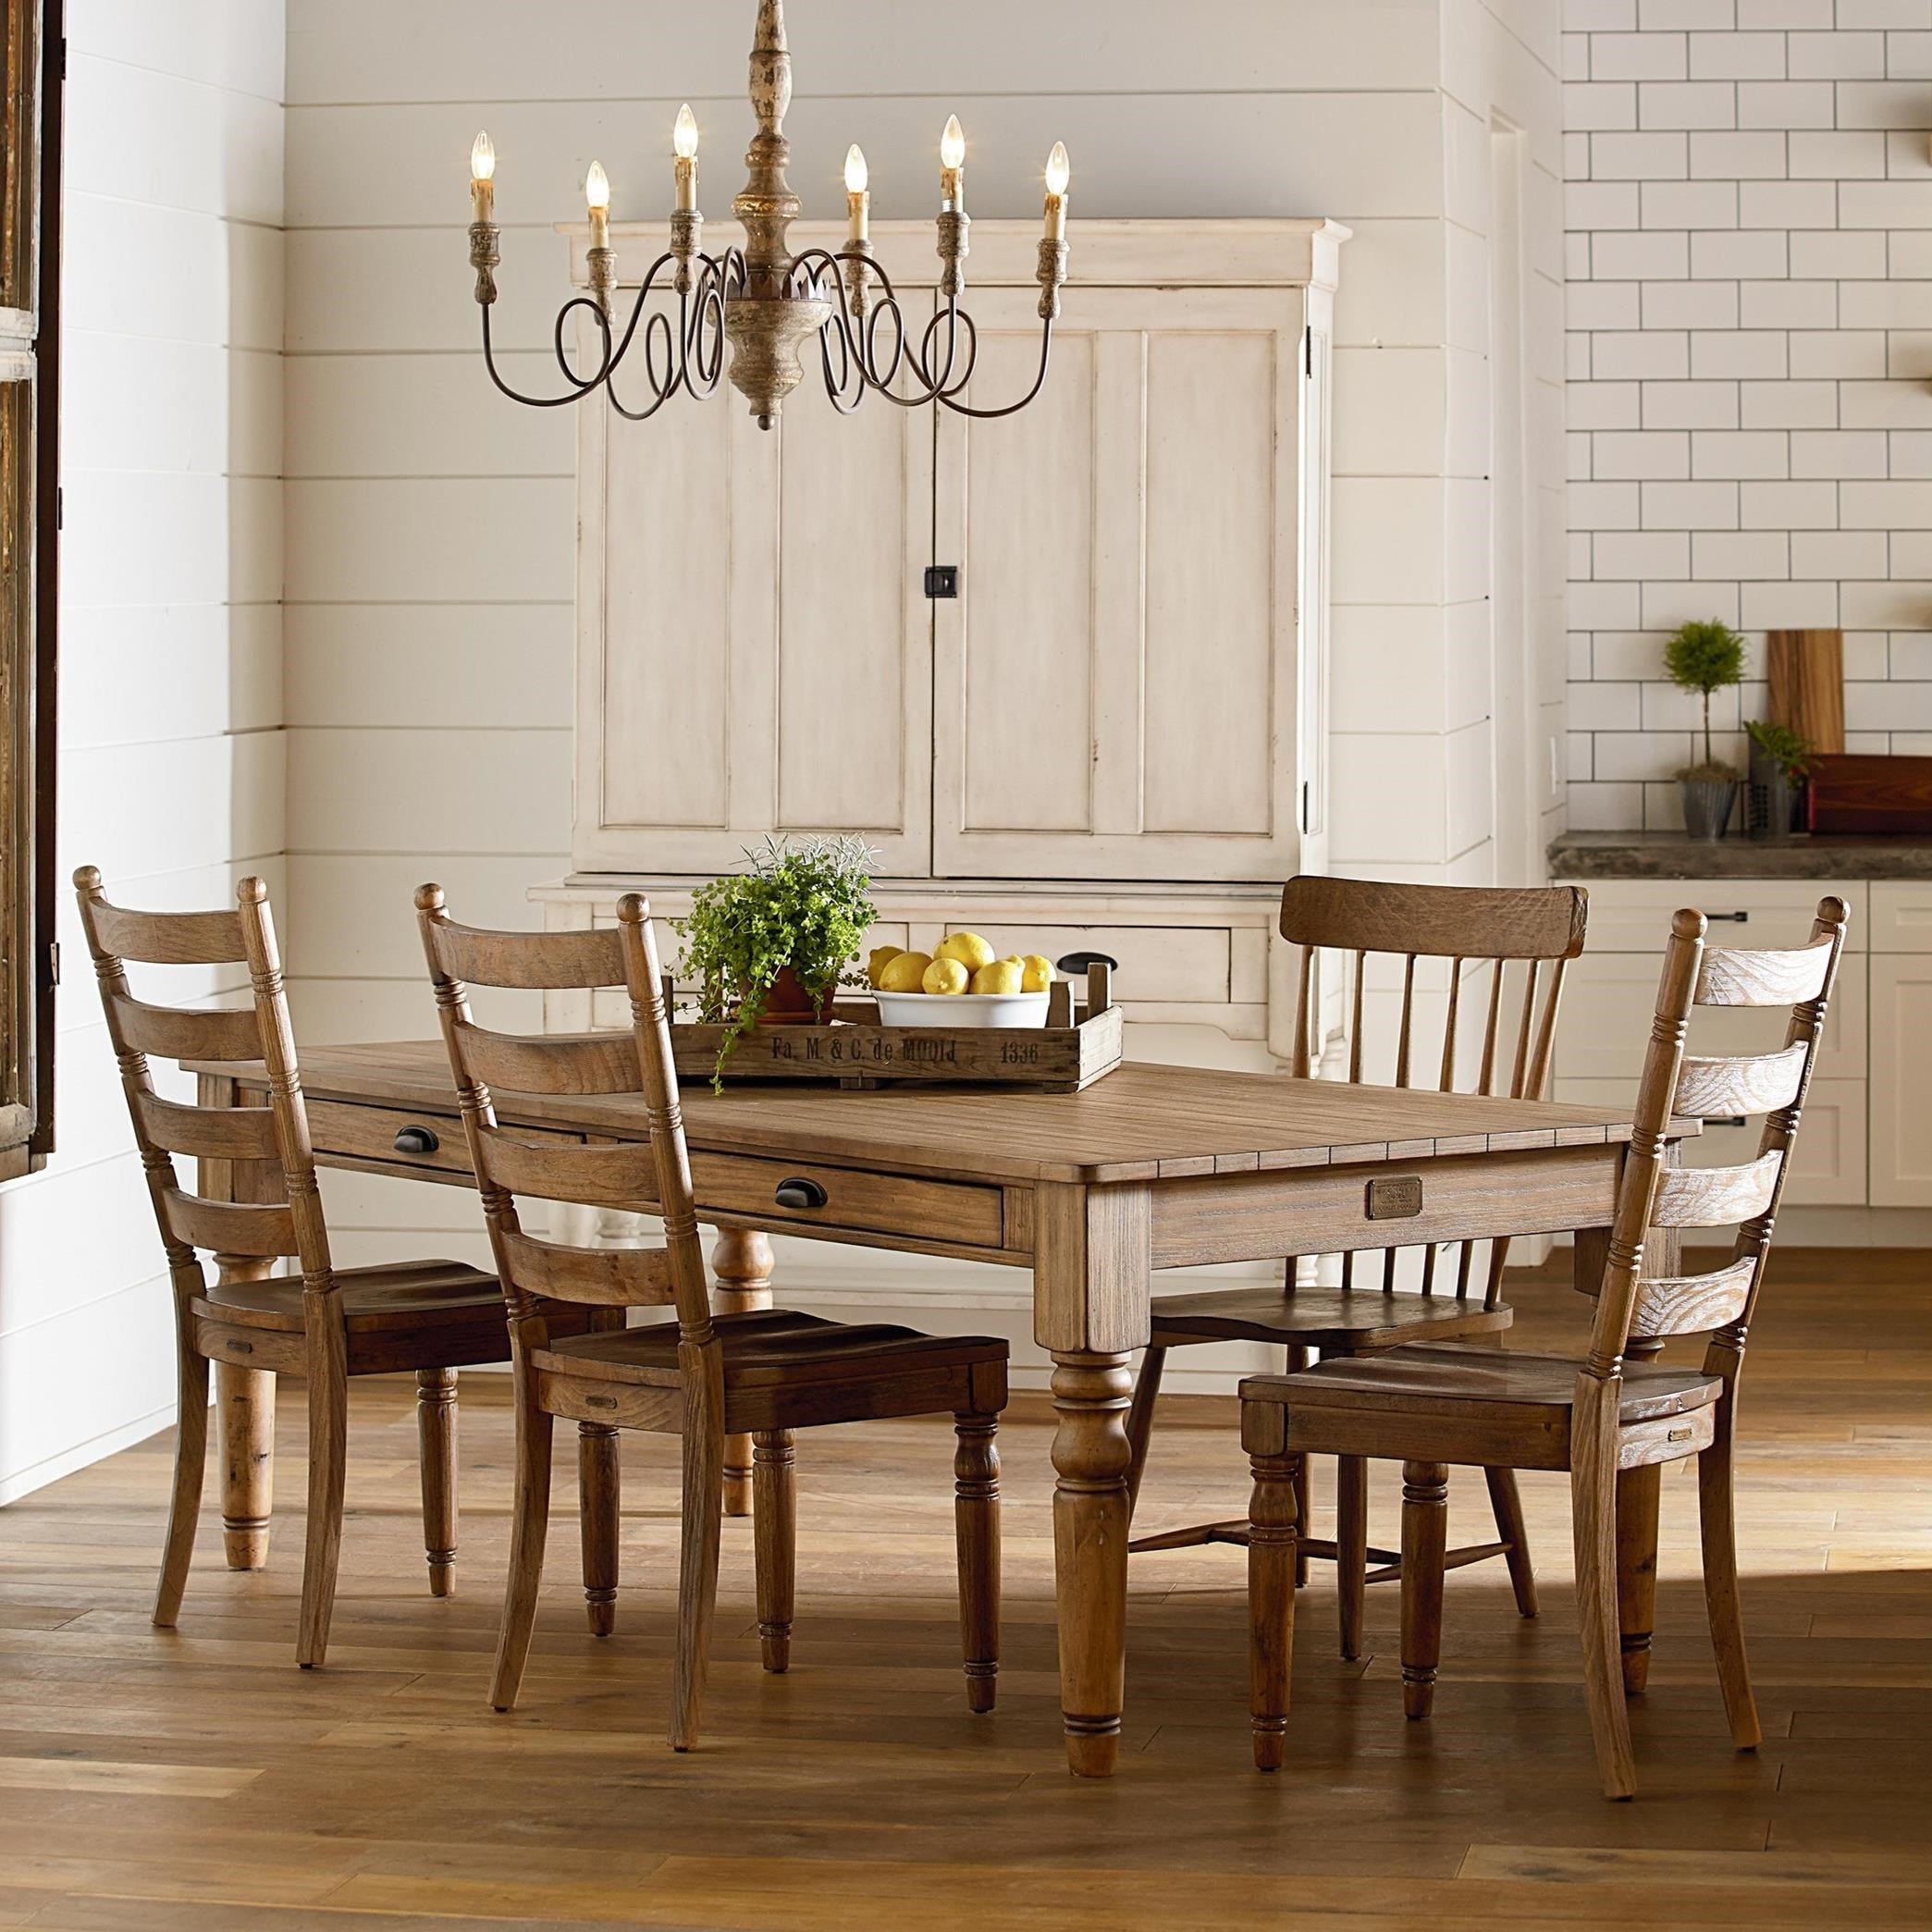 Primitive Dining Room Group by Magnolia Home by Joanna Gaines | Wolf ...